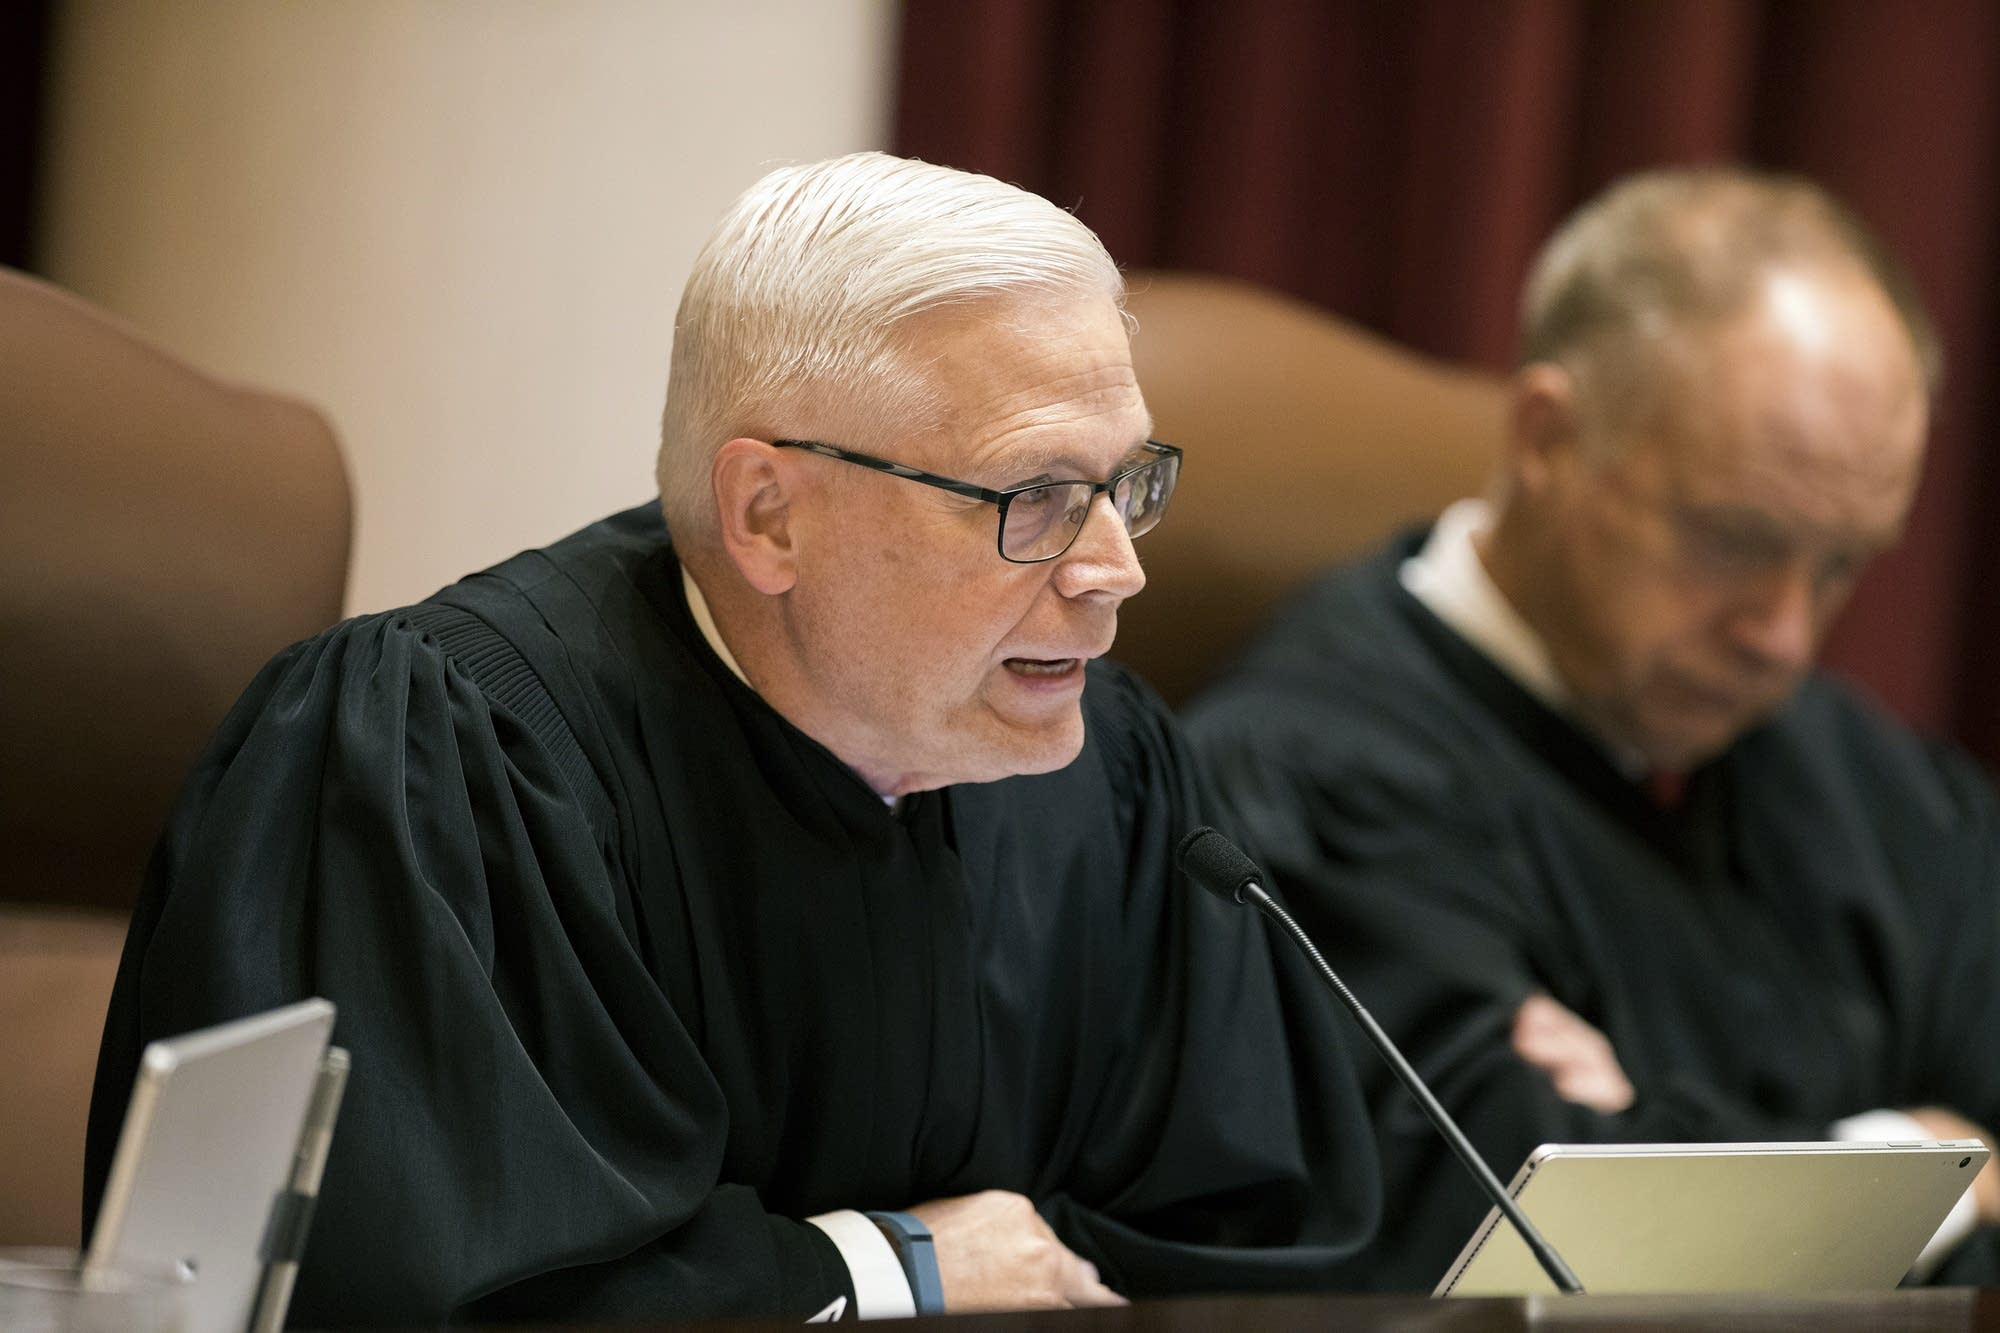 Minnesota Supreme Court Justice David L. Lillehaug asks questions.